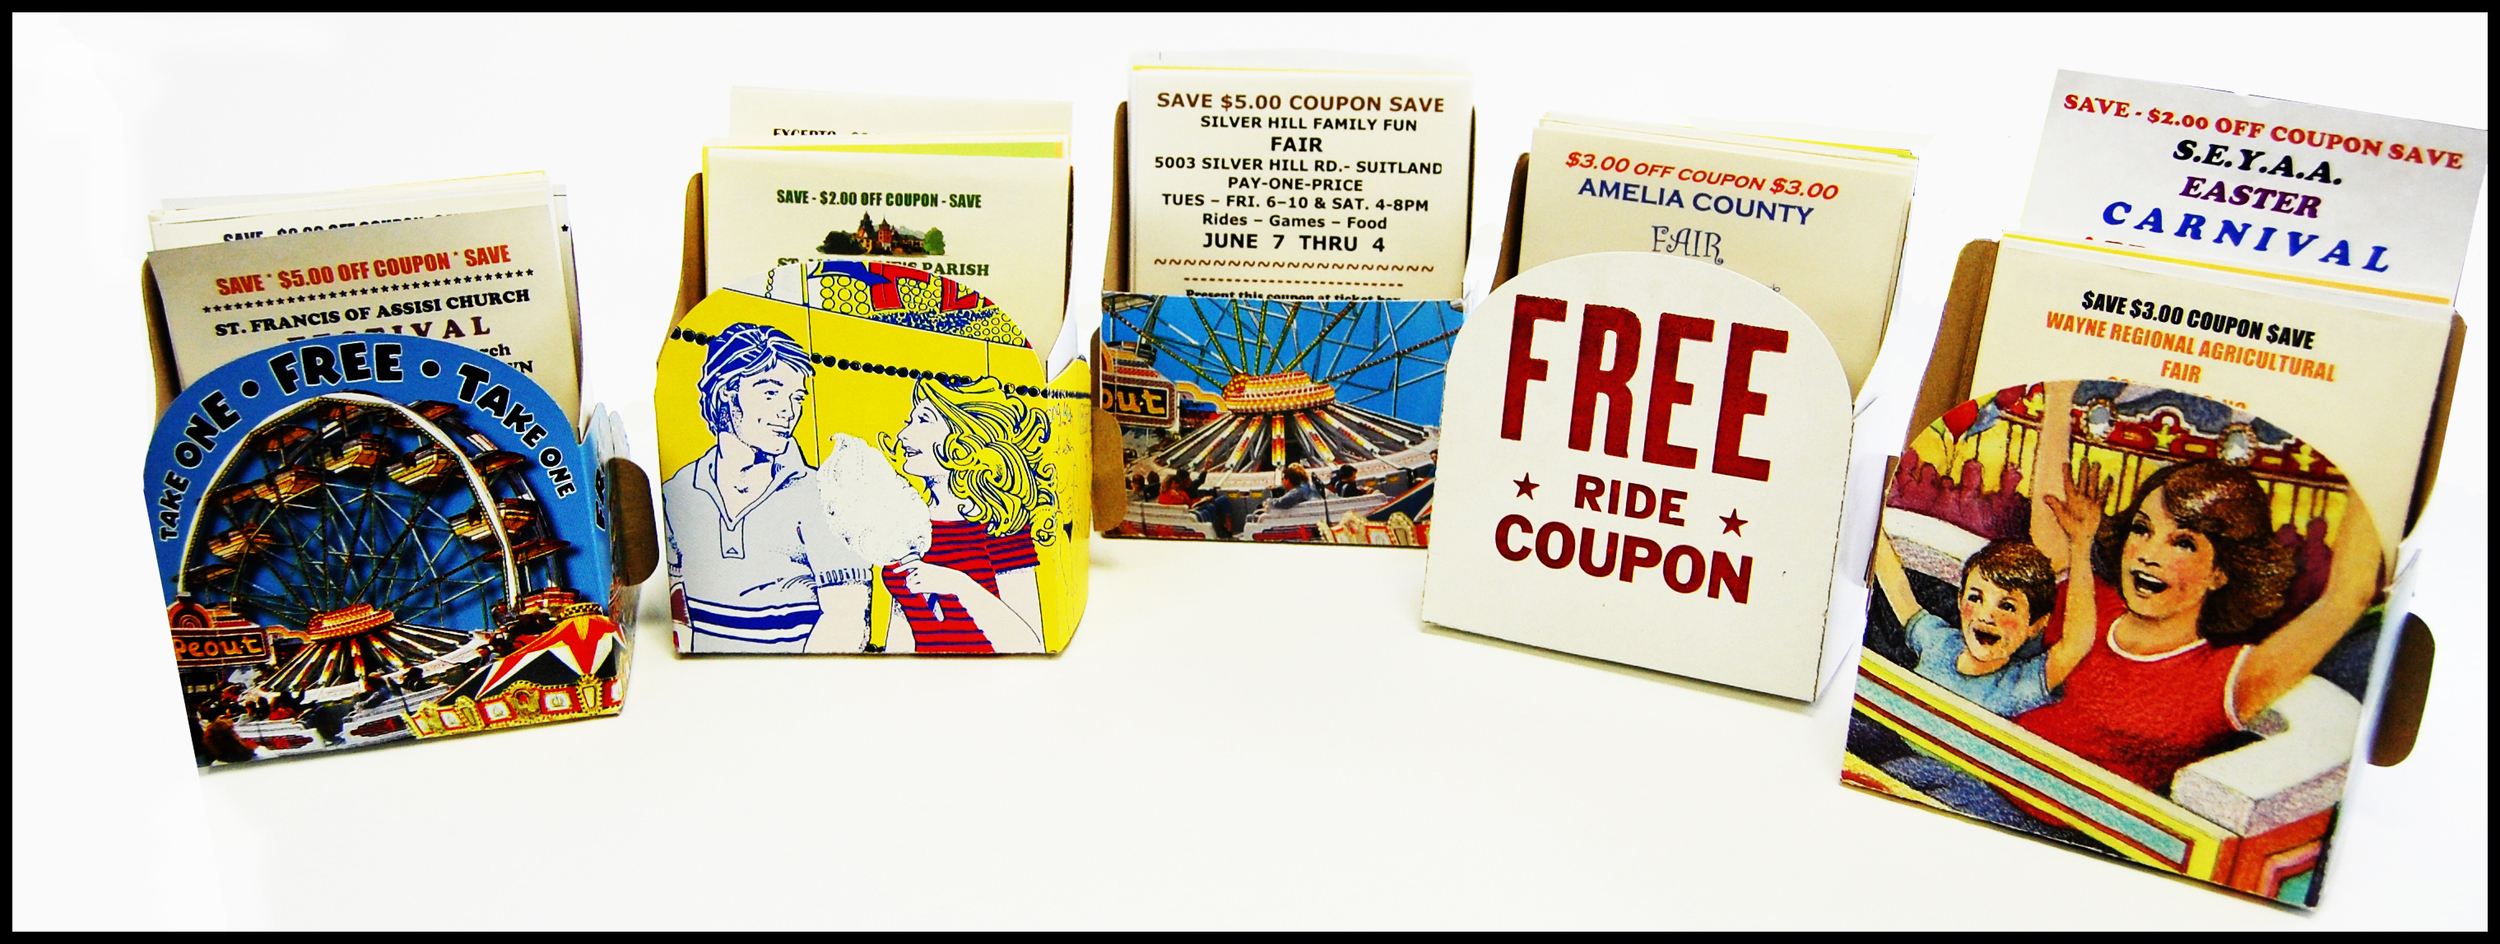 Coupon Holders